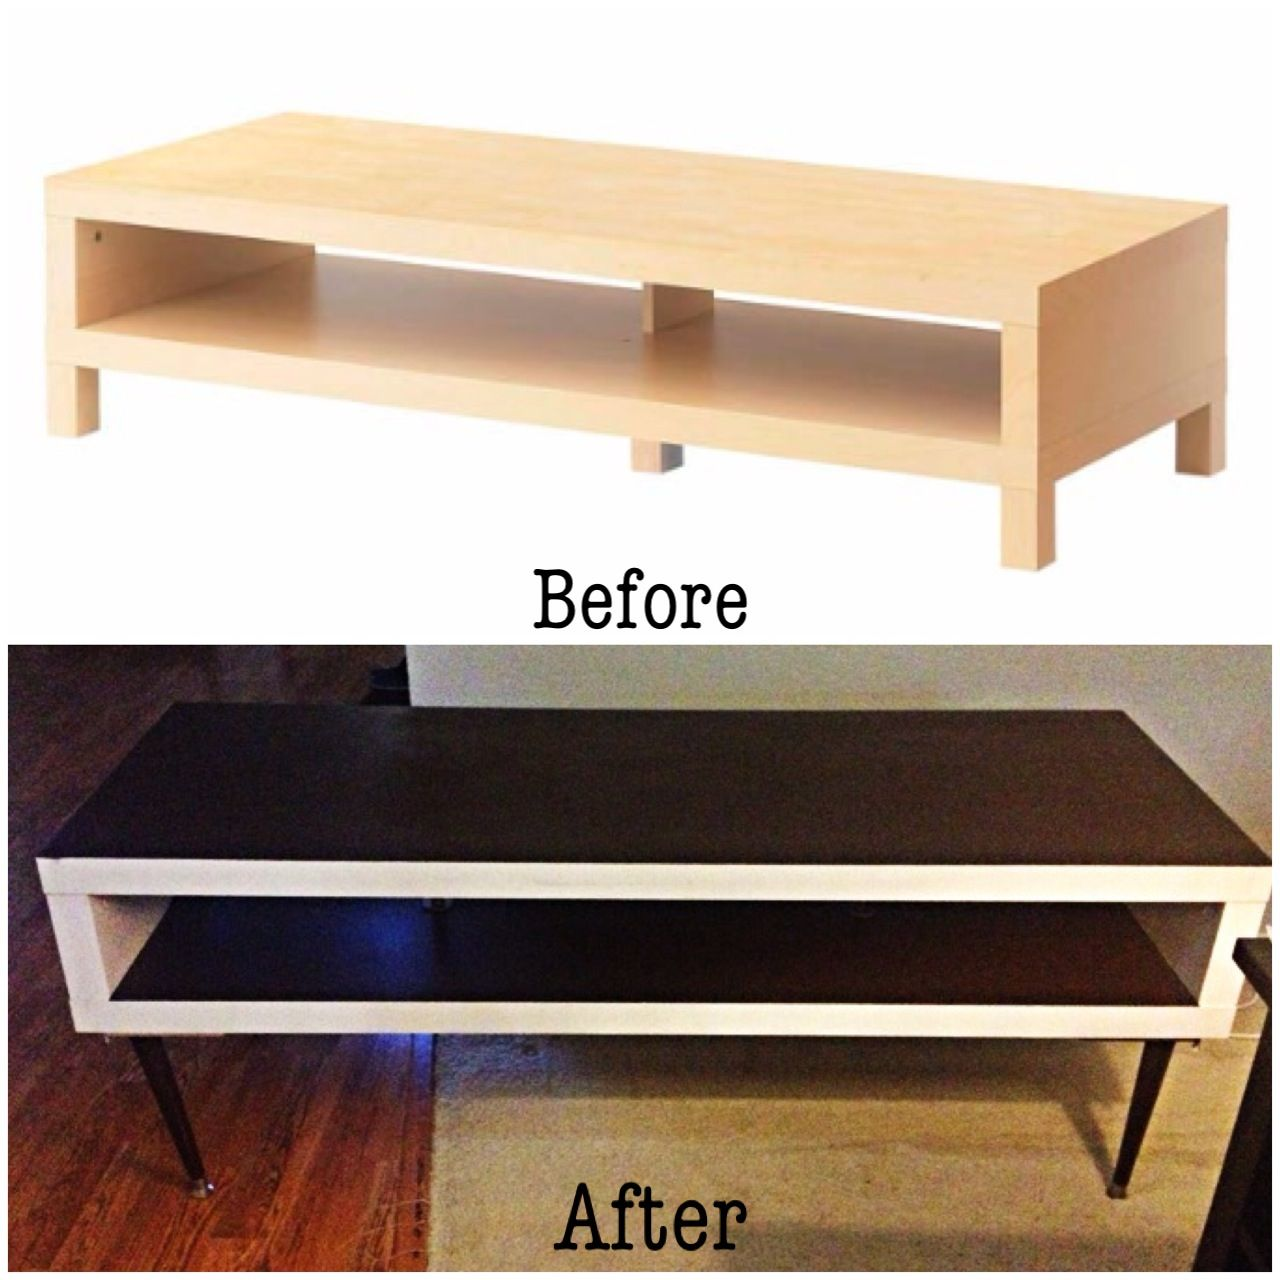 Diy Ikea Hack Lack Tv Stand To Mid Century Inspired